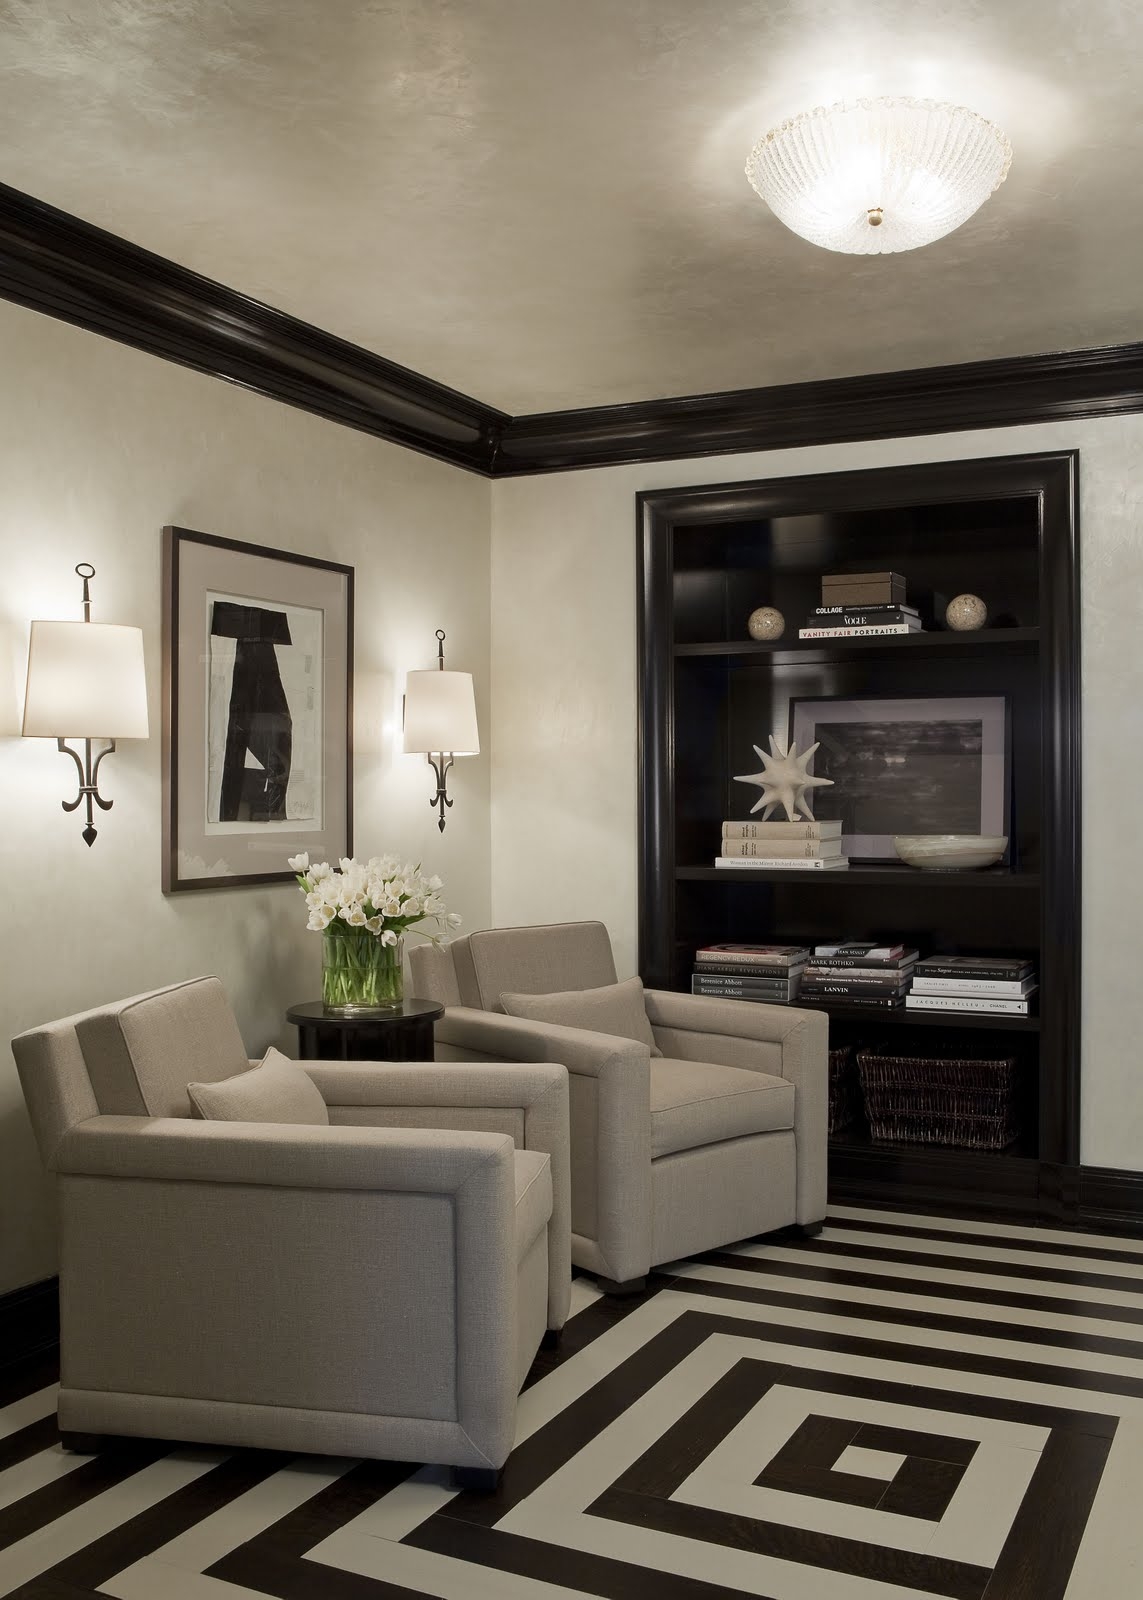 The Detailed Designer Painted Floors The Options Are Endless And The Results Are Fabulous